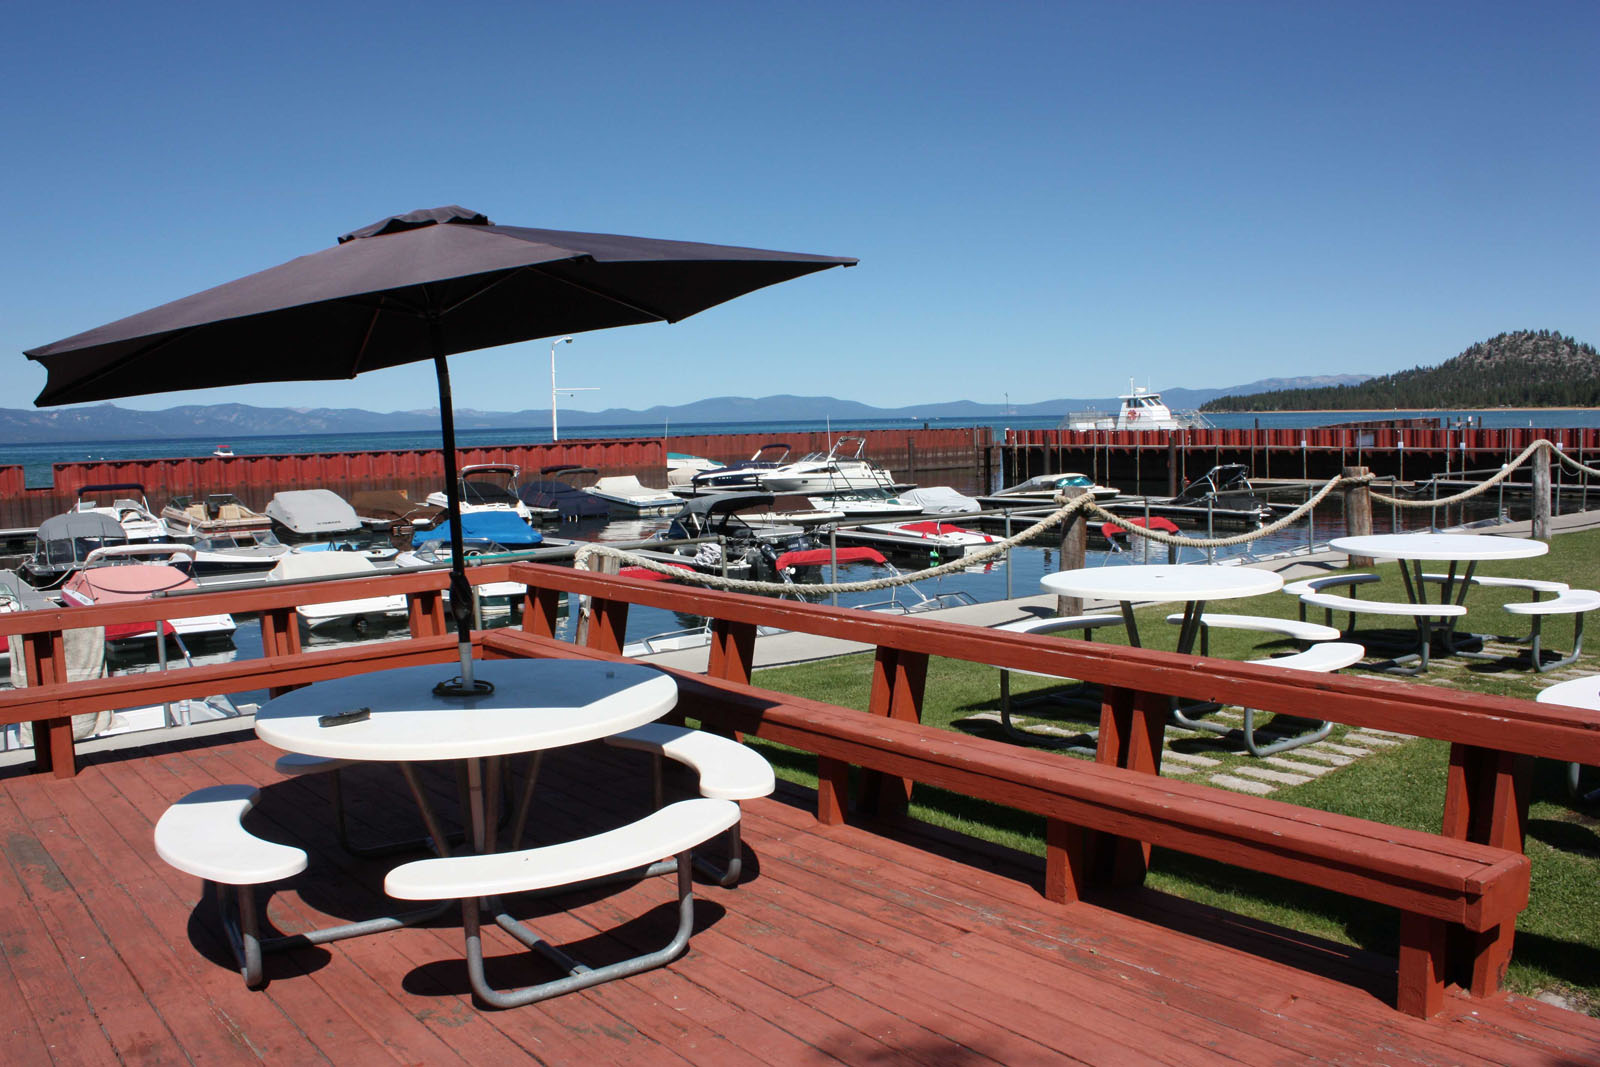 Marina on Lake Tahoe with picnic area